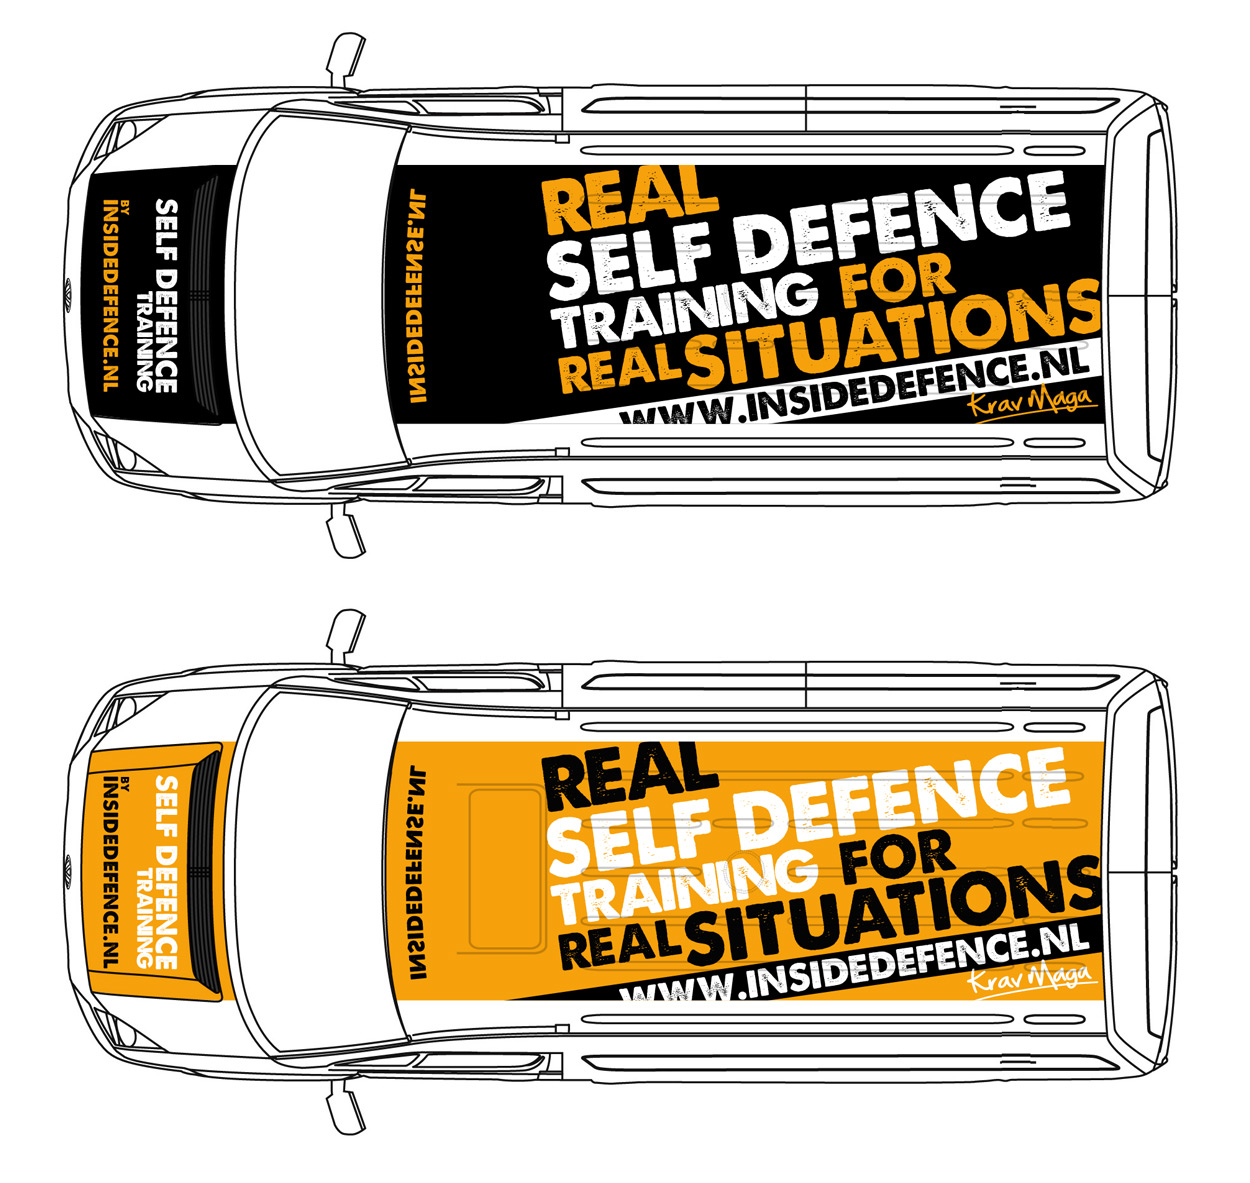 Inside Defence van stickers